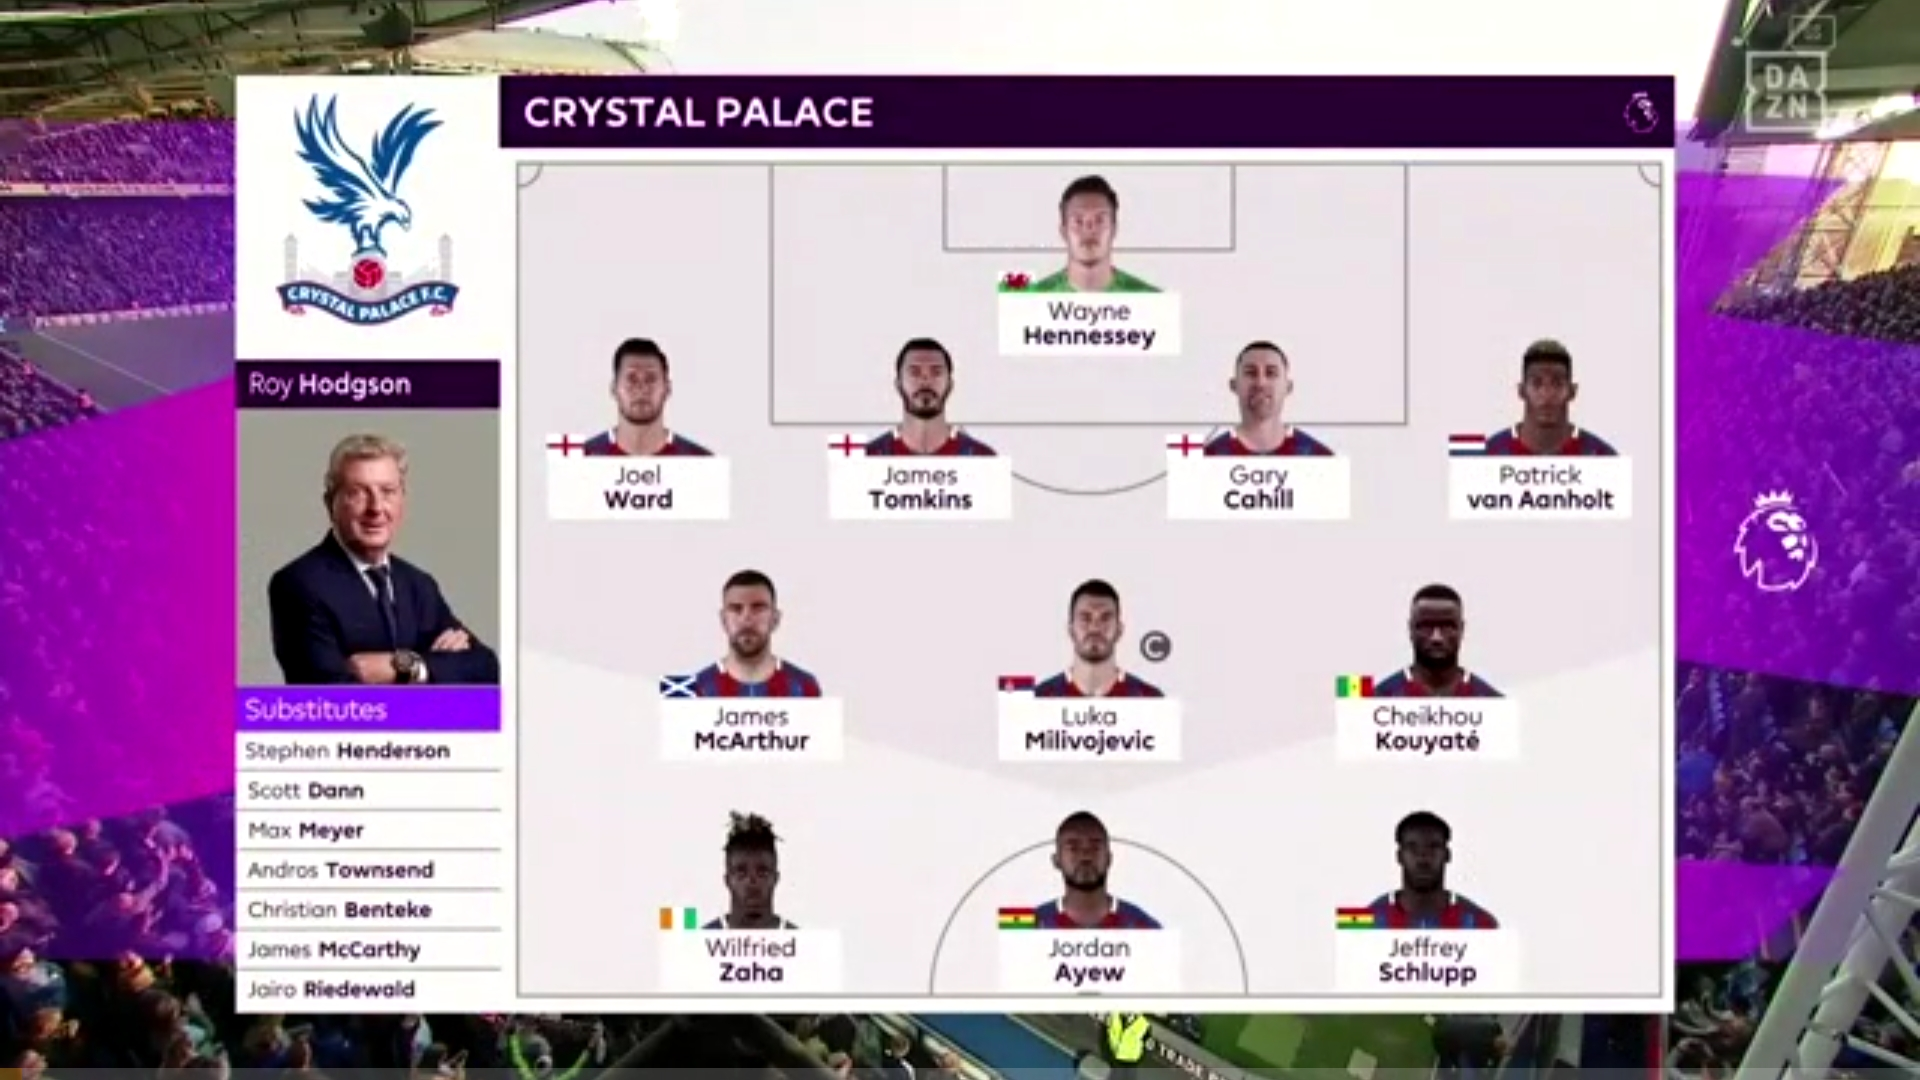 19-10-2019 - Crystal Palace 0-2 Manchester City